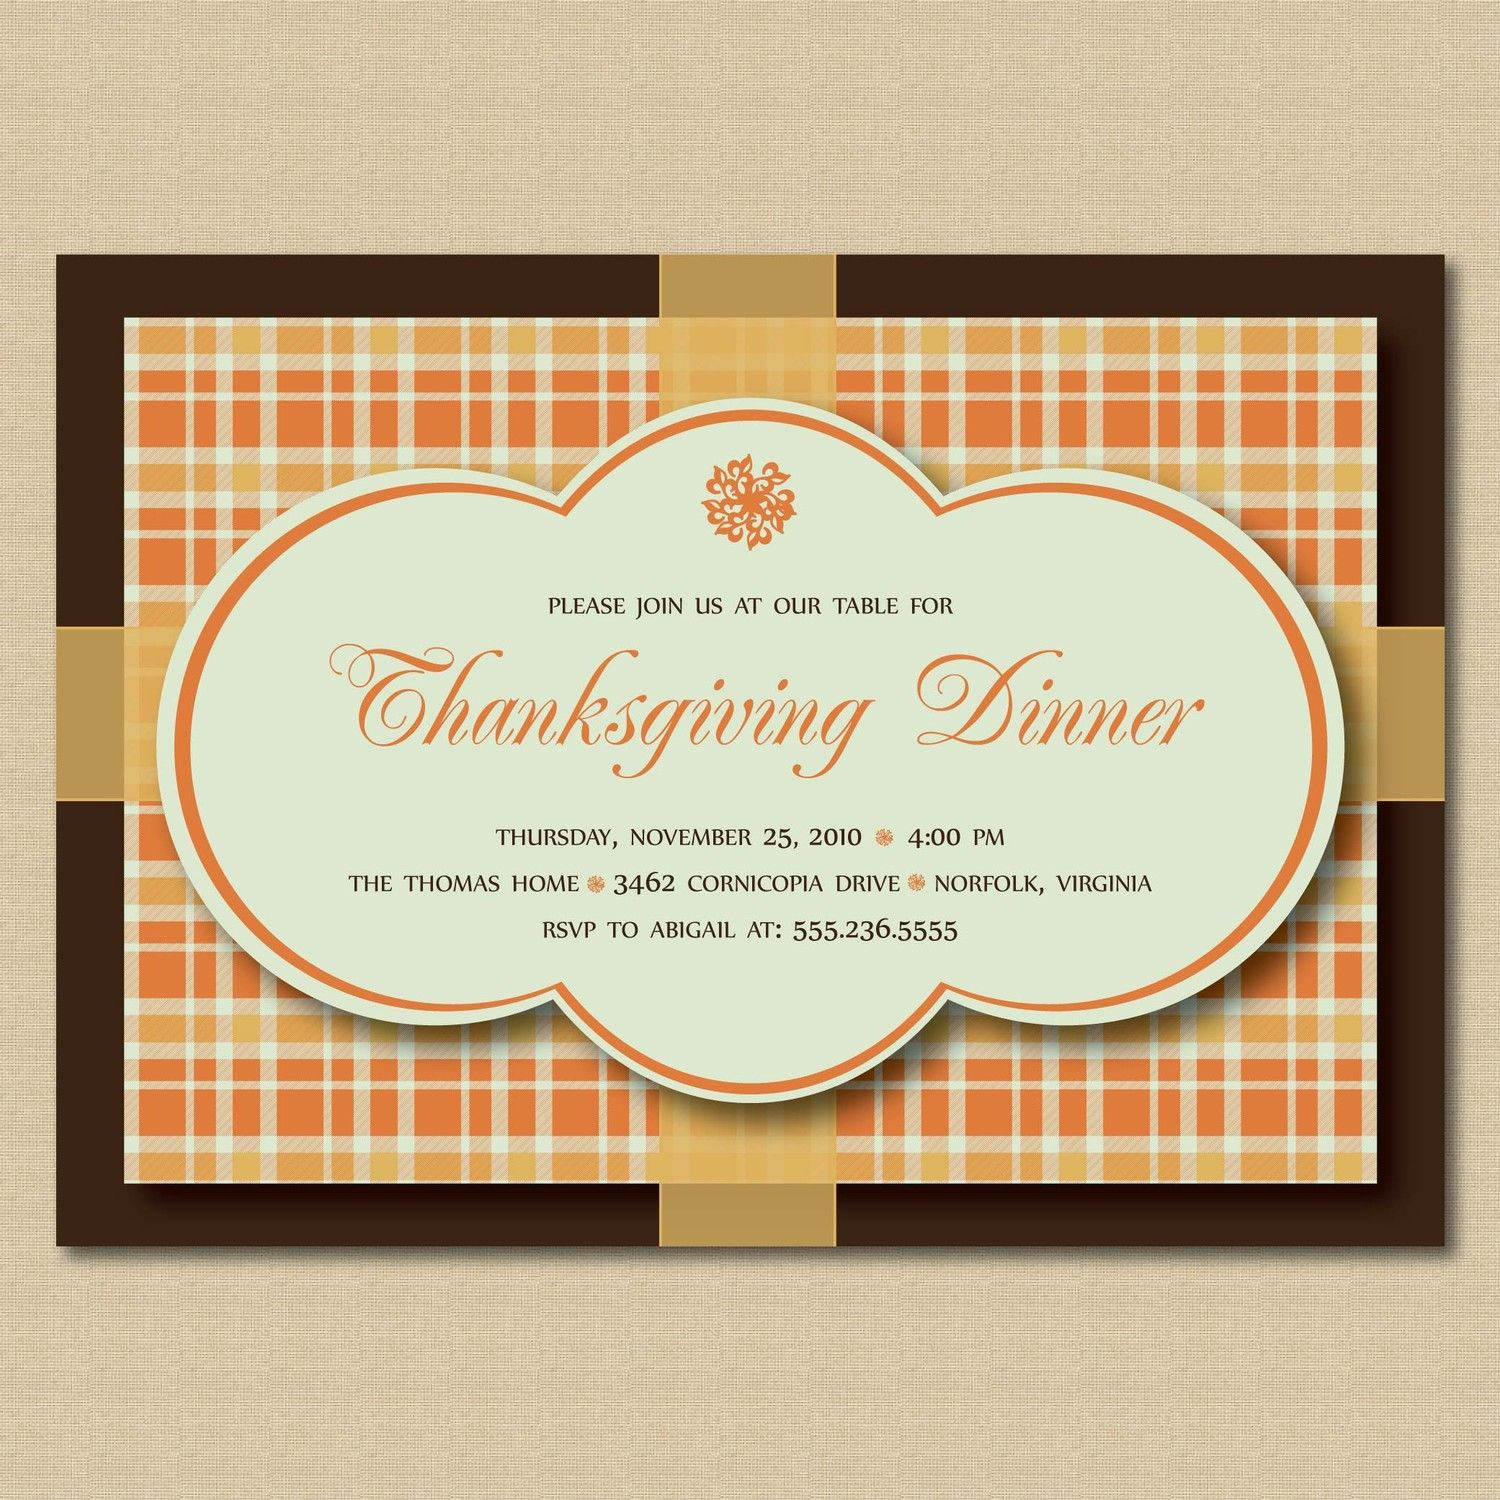 Formal Dinner Invitation Sample Customprintinvitationcards Provide Tips Tricks Ideas .